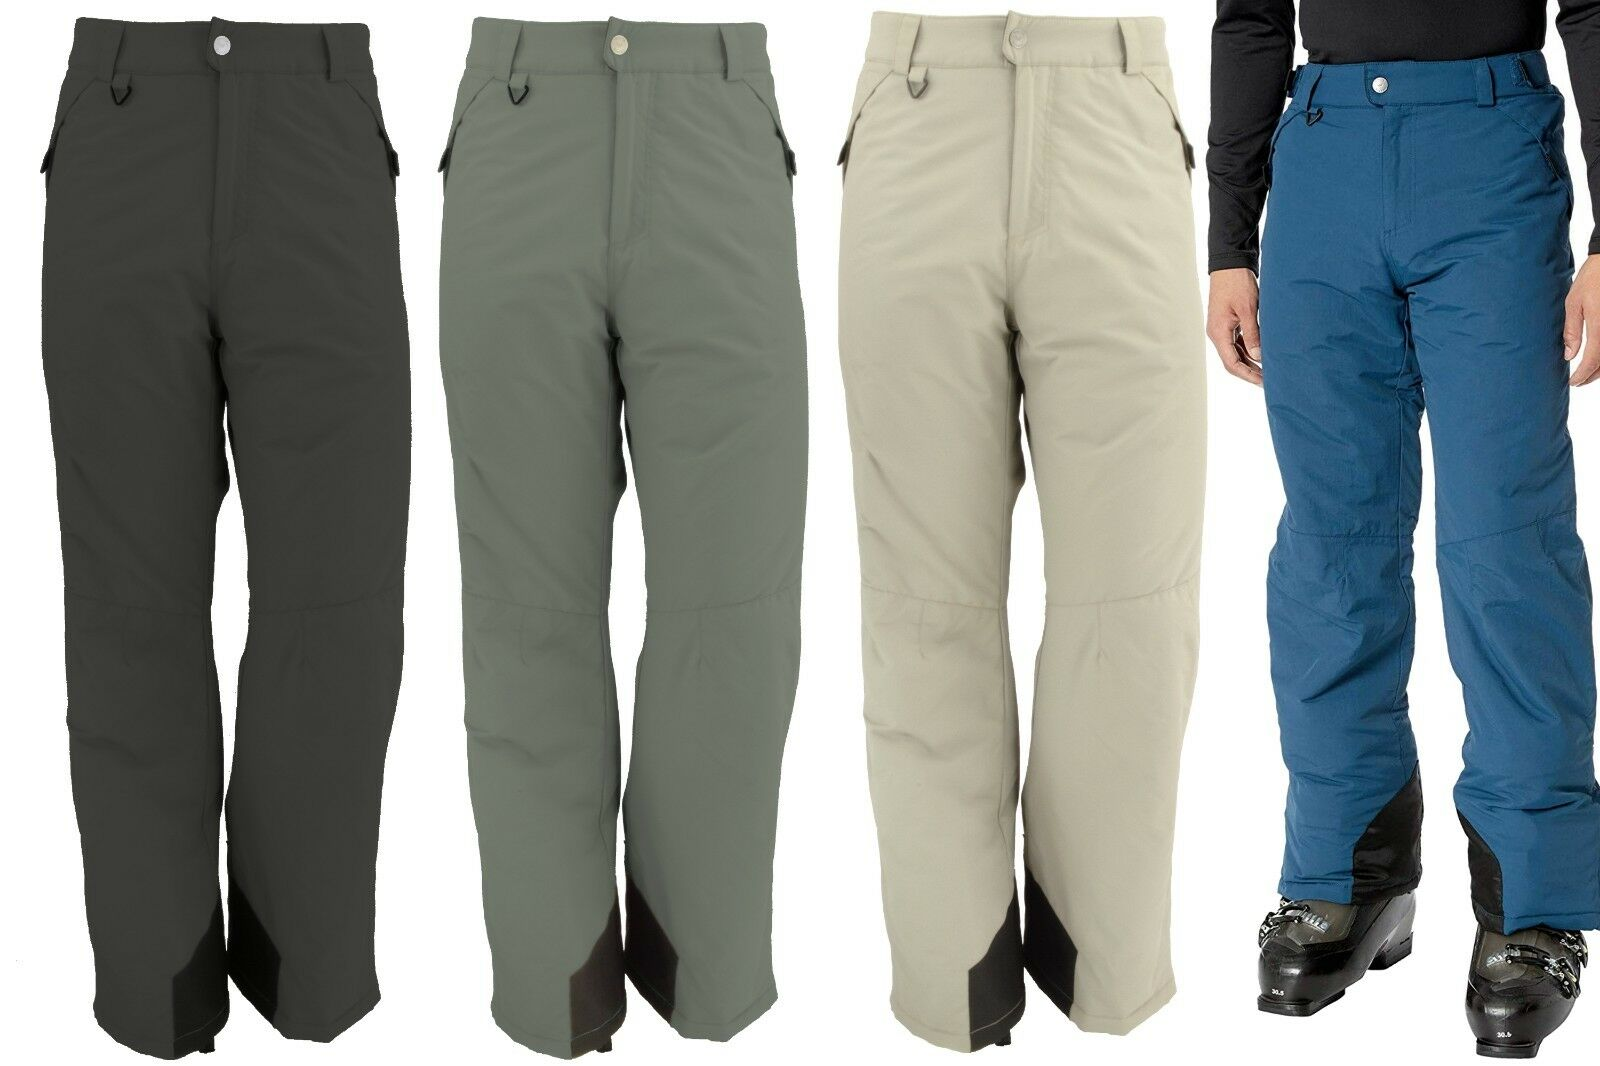 WHITE SIERRA T9705M MEN'S TOBOGGAN  INSULATED SKI SNOWBOARD PANT 30 , 32 , 34  IN  outlet sale